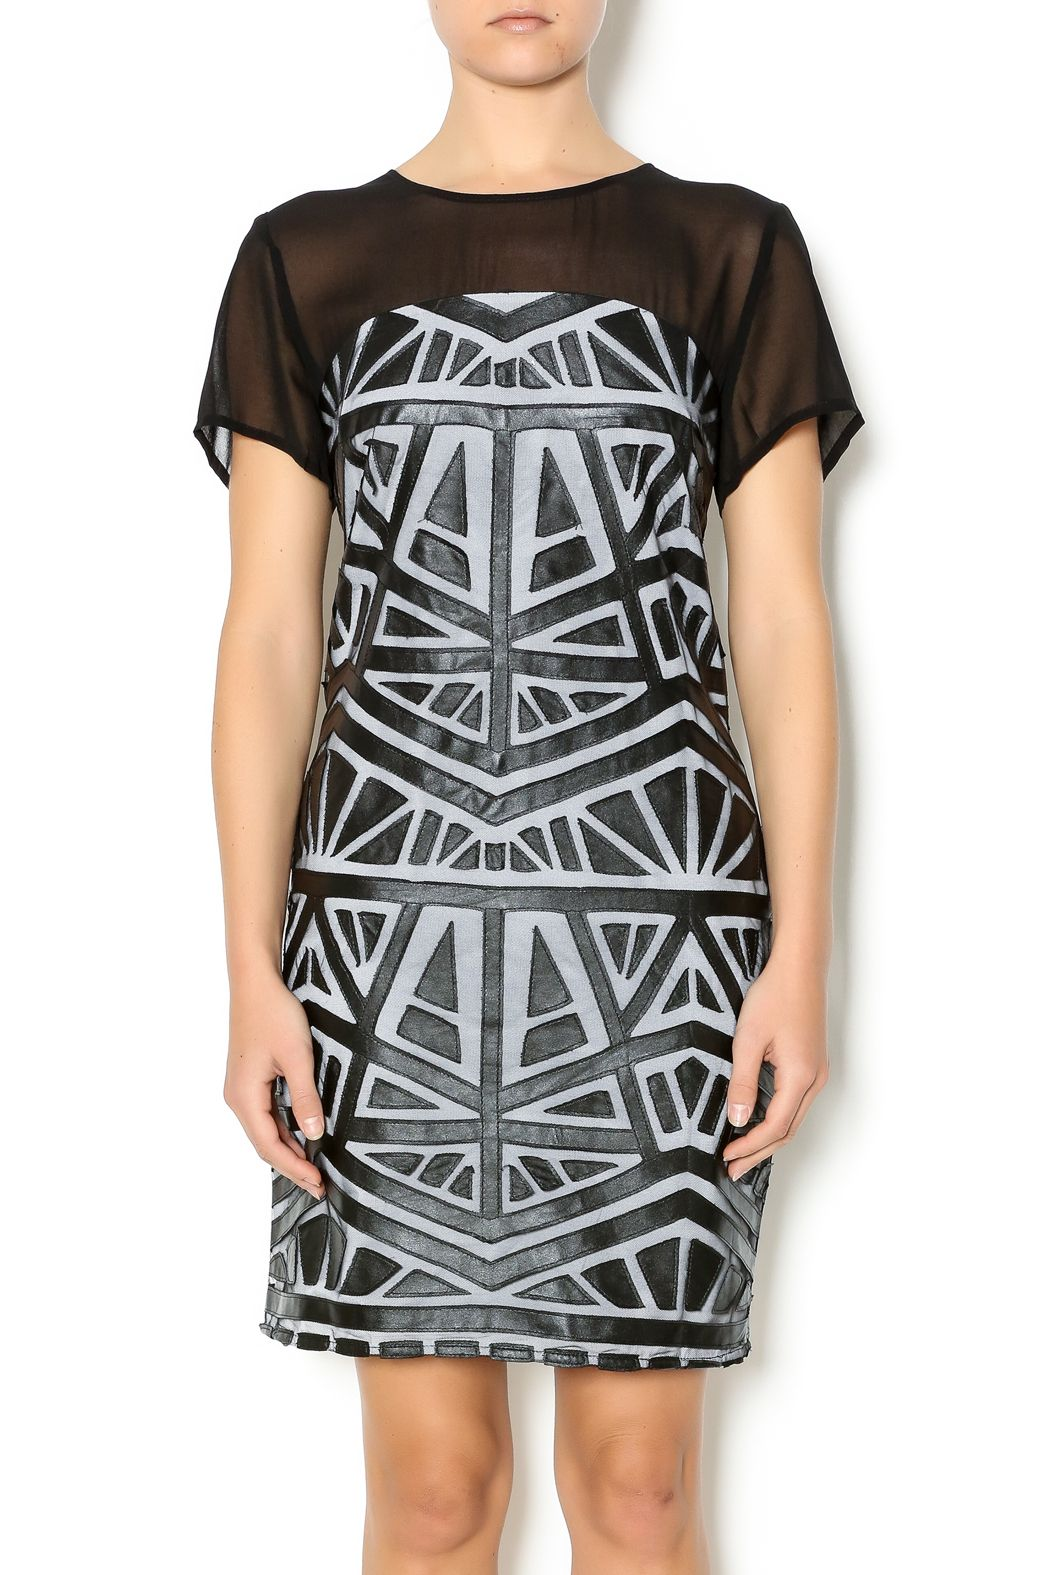 Lumiere black white midi dress short sleeve dresses vegan leather